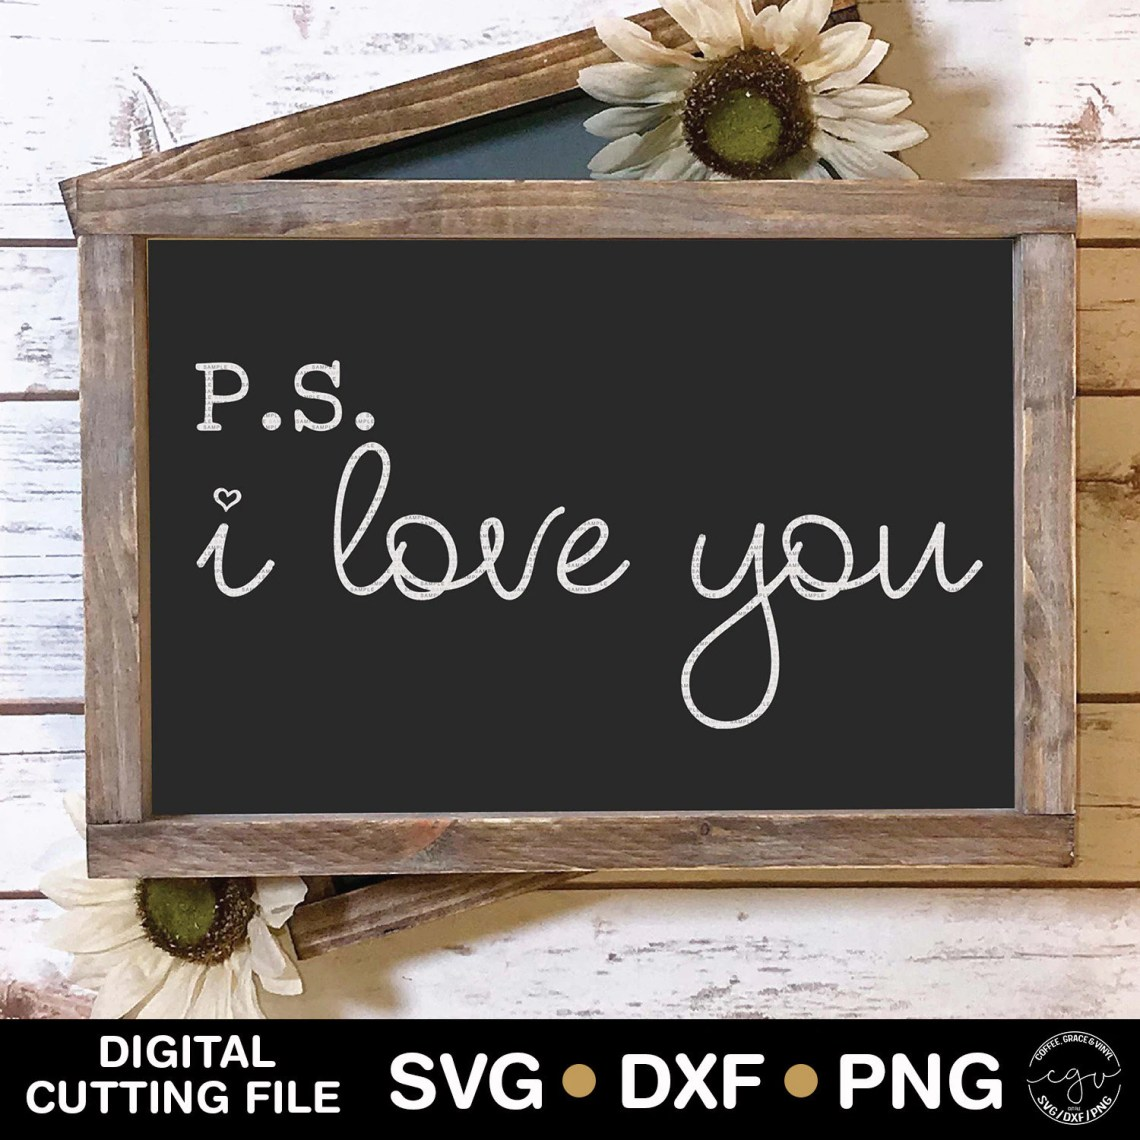 Download Cut File Ps I Love You SVG DXF PNG Silhouette Cameo | Etsy